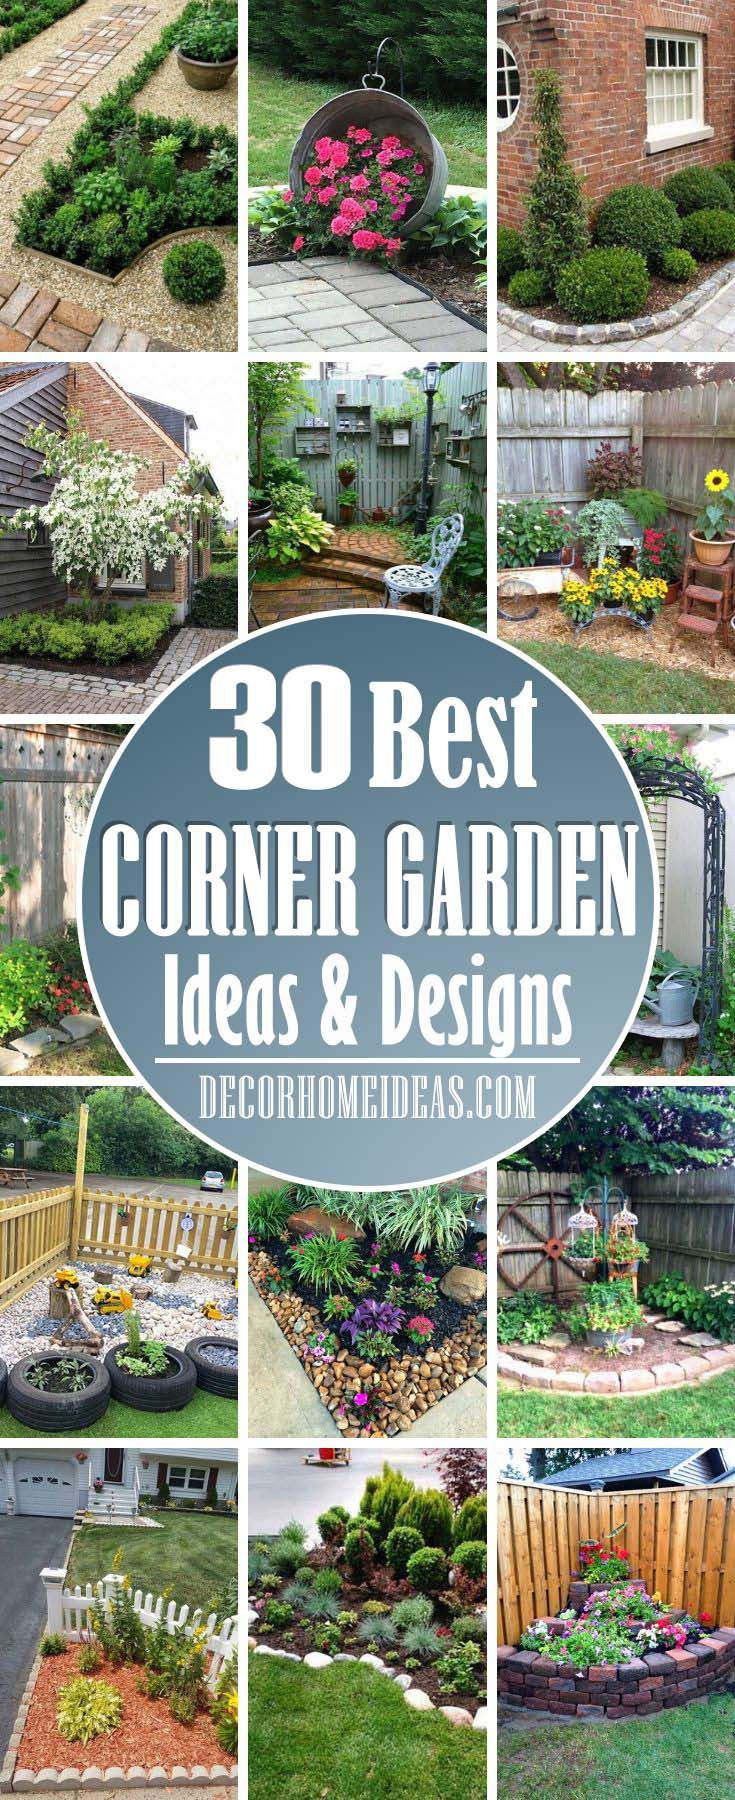 Best Corner Garden Ideas. Do you have a corner in your garden that needs to be enchanted? These beautiful ideas with flowers and decorations will make every corner garden the best one in your back